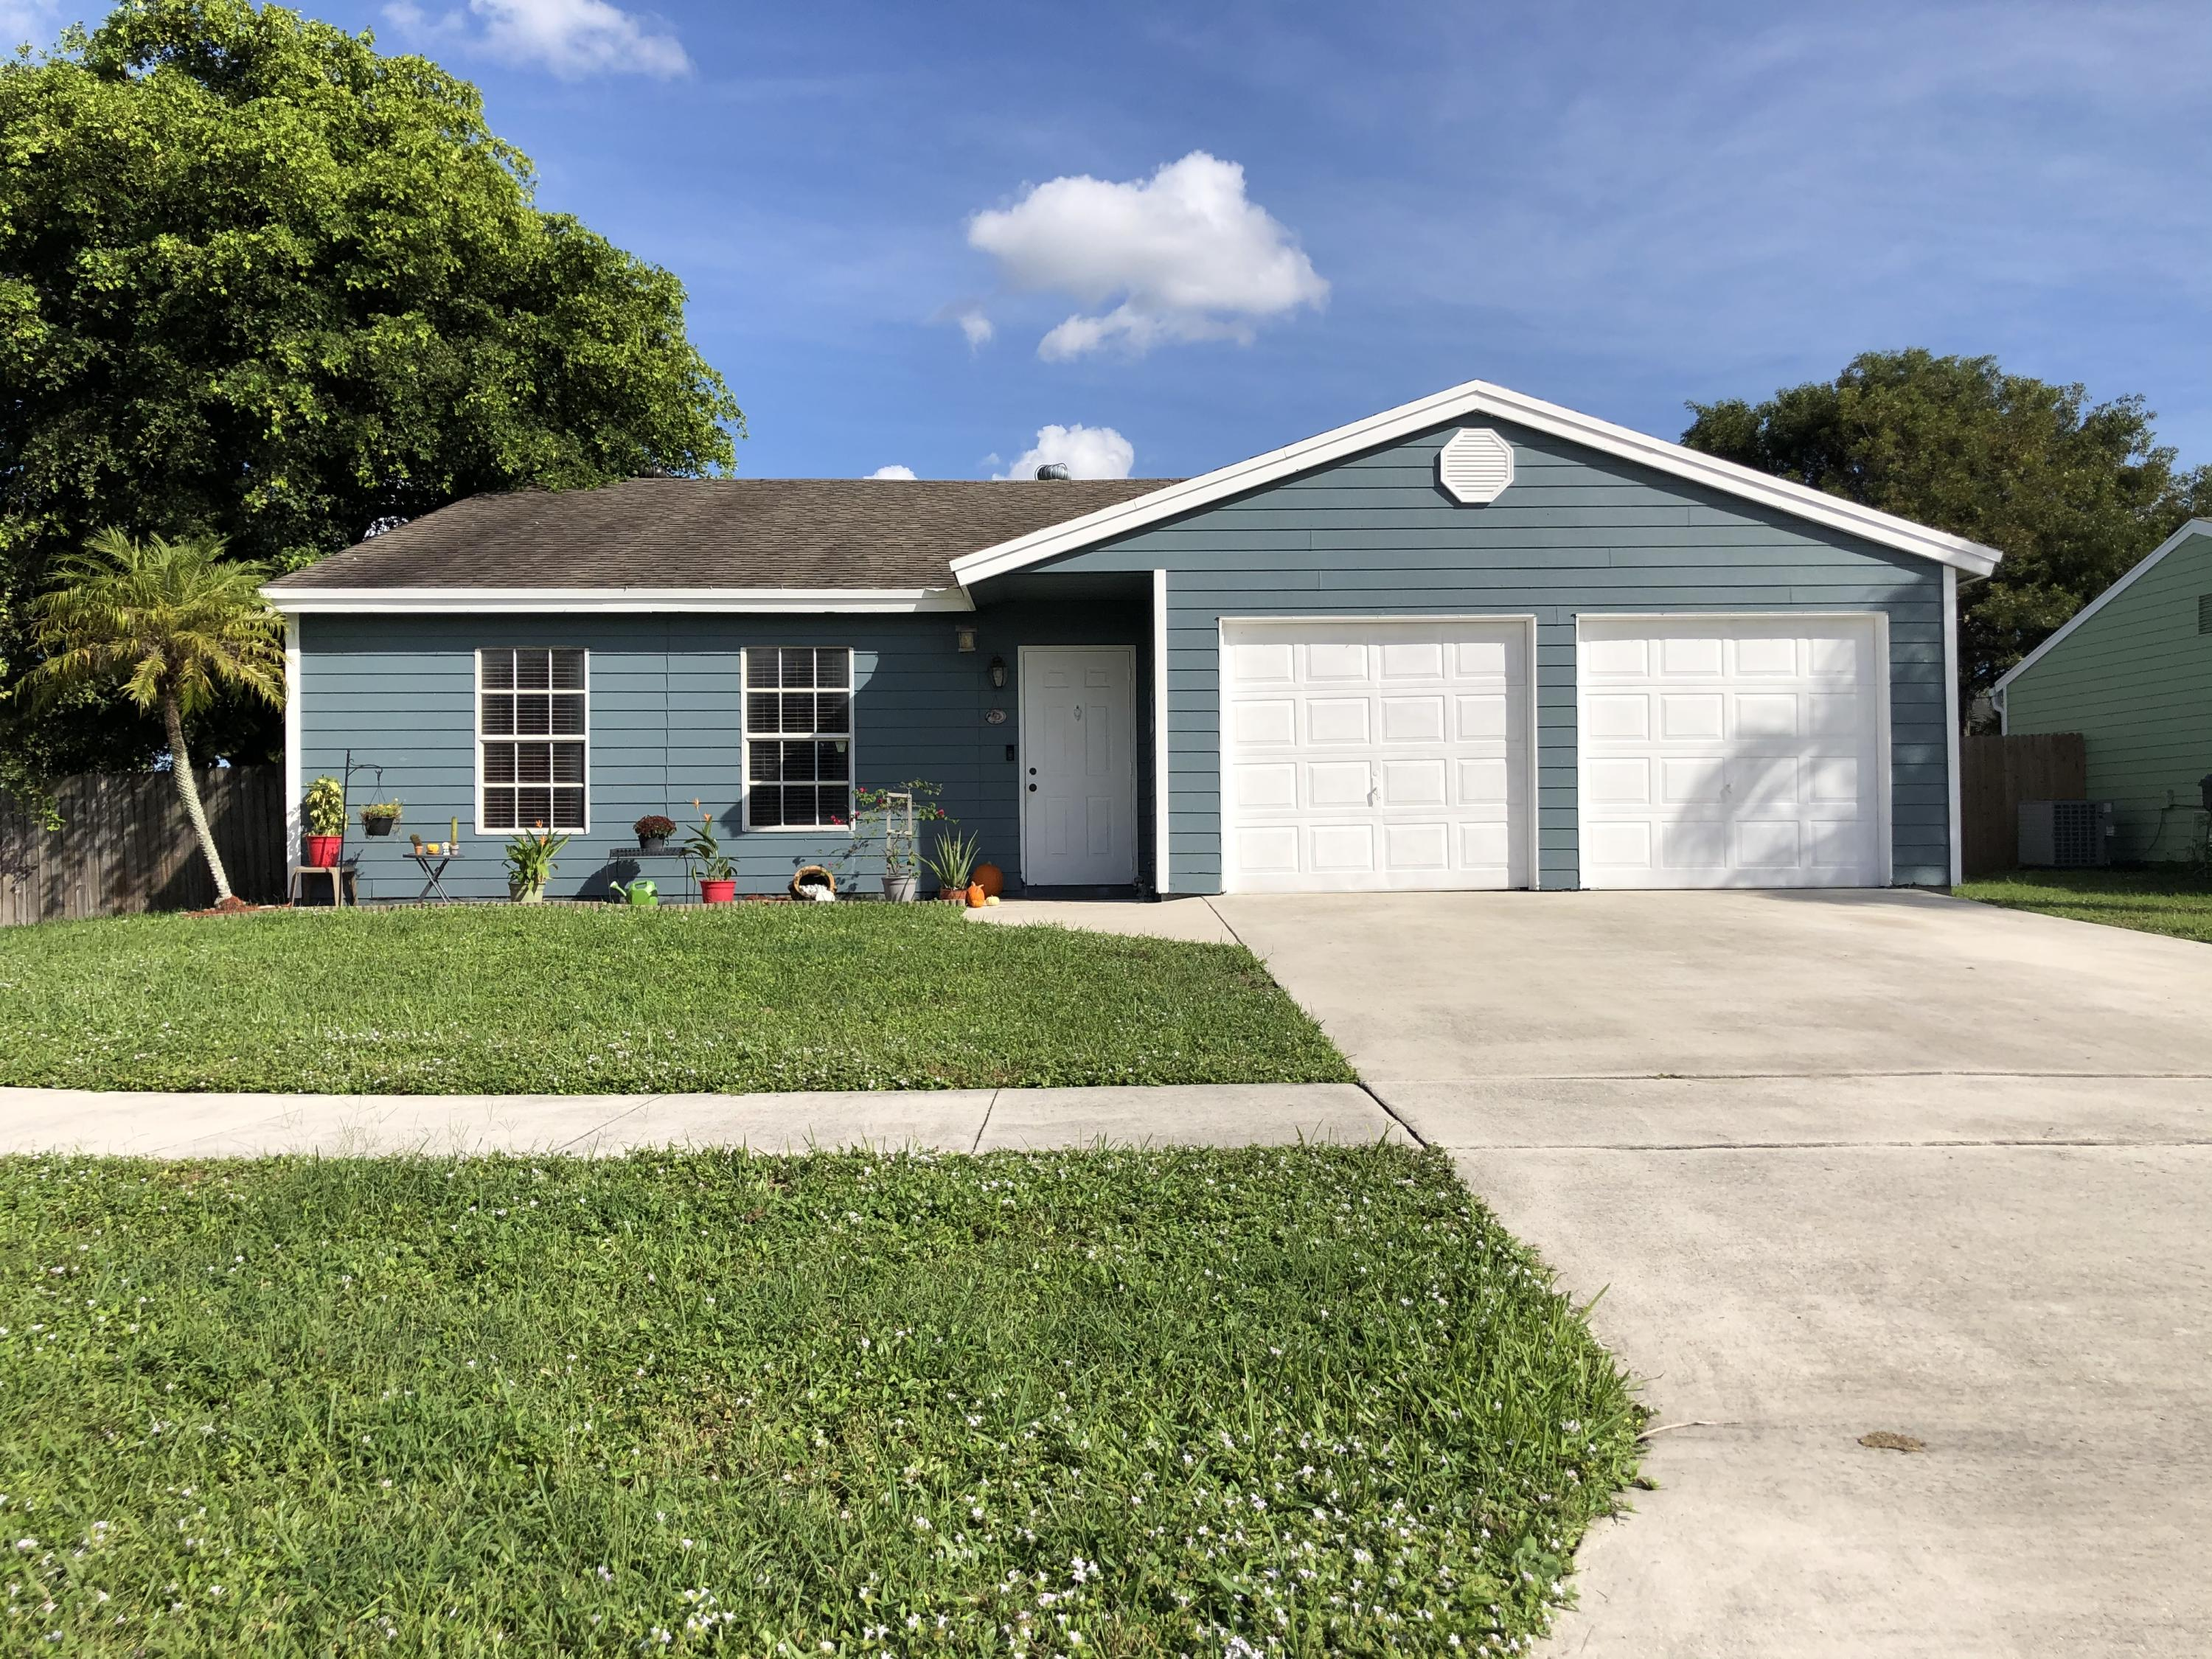 Home for sale in Country Lakes West on Bentbrook Blvd (right after CountryWood going west on Lantana.) Lake Worth Florida